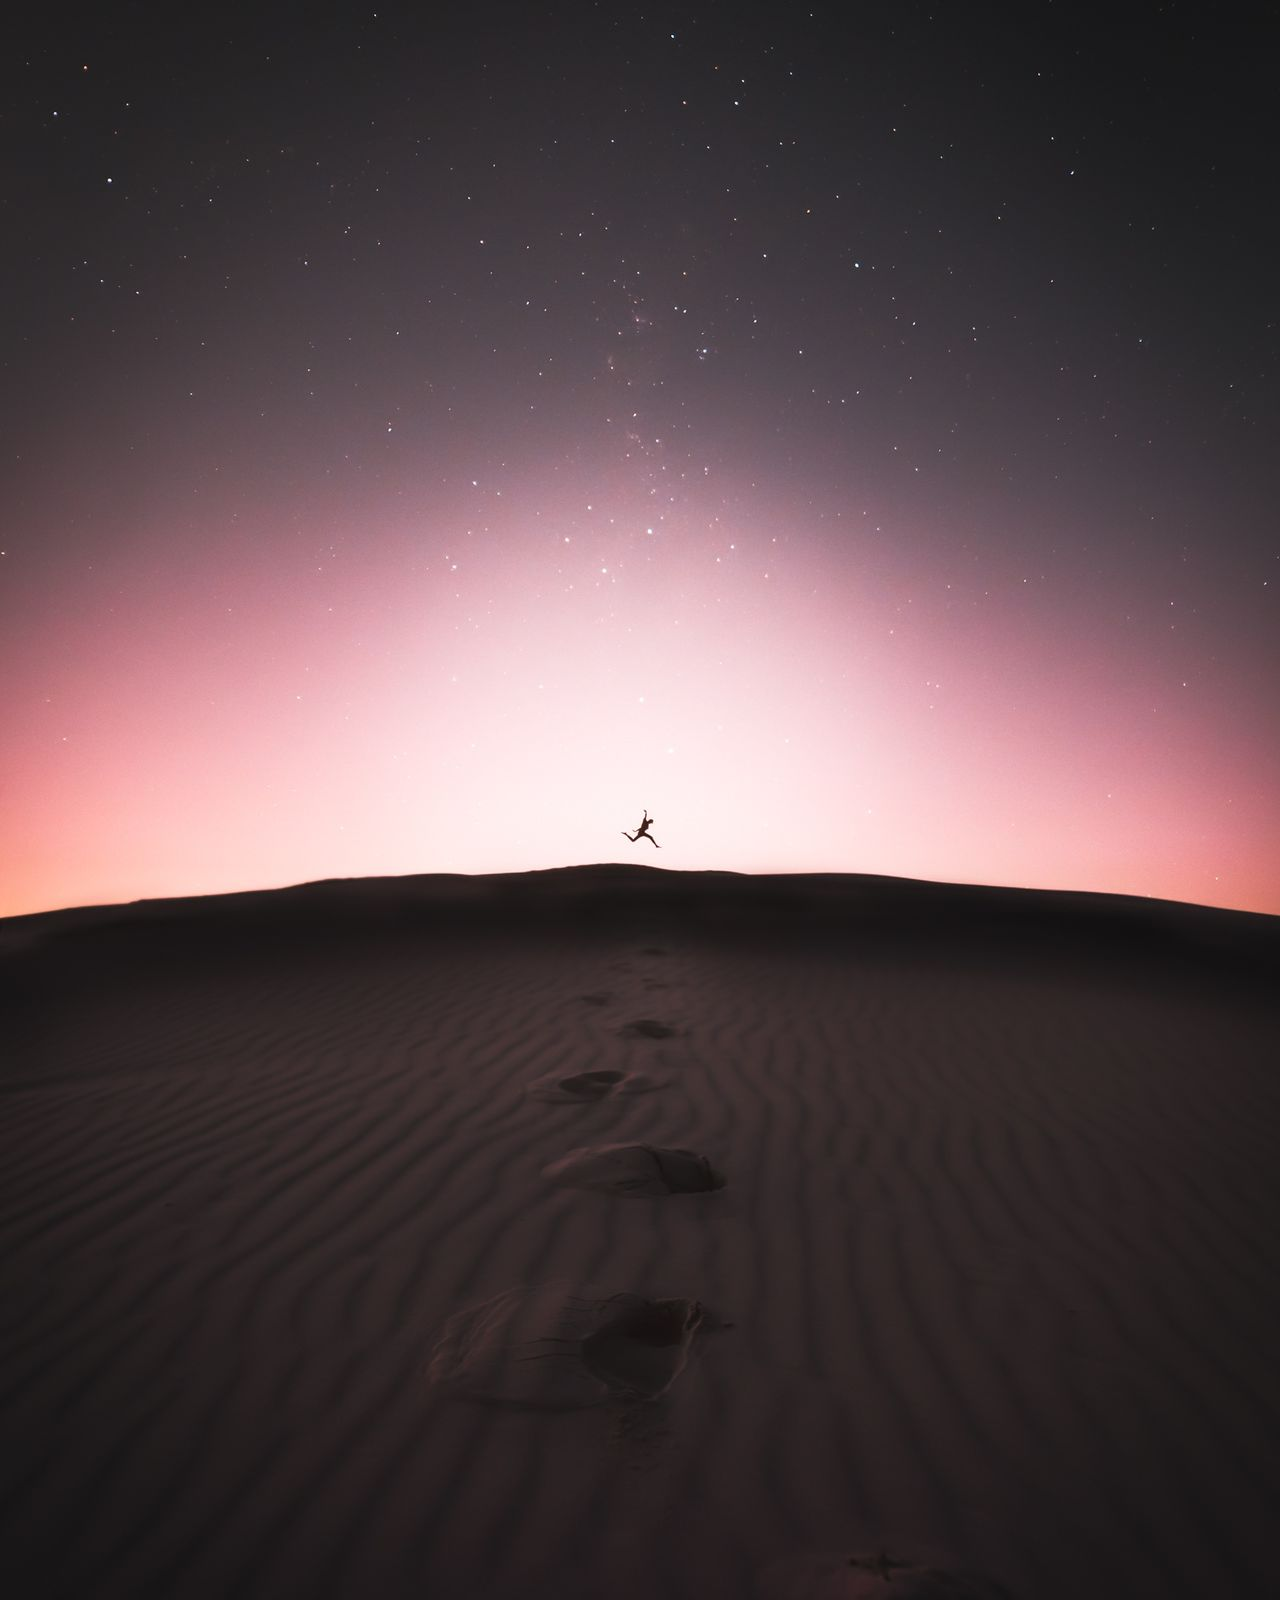 Dont take the things for granted other people are praying for.Silhouette Nature Outdoors Desert Tranquility Beauty In Nature One Person Scenics Sand Dune Astronomy Star - Space Night People Sky Sand Arid Climate Modern Travel Landscape Sunset Calm Nature Minimal Galaxy